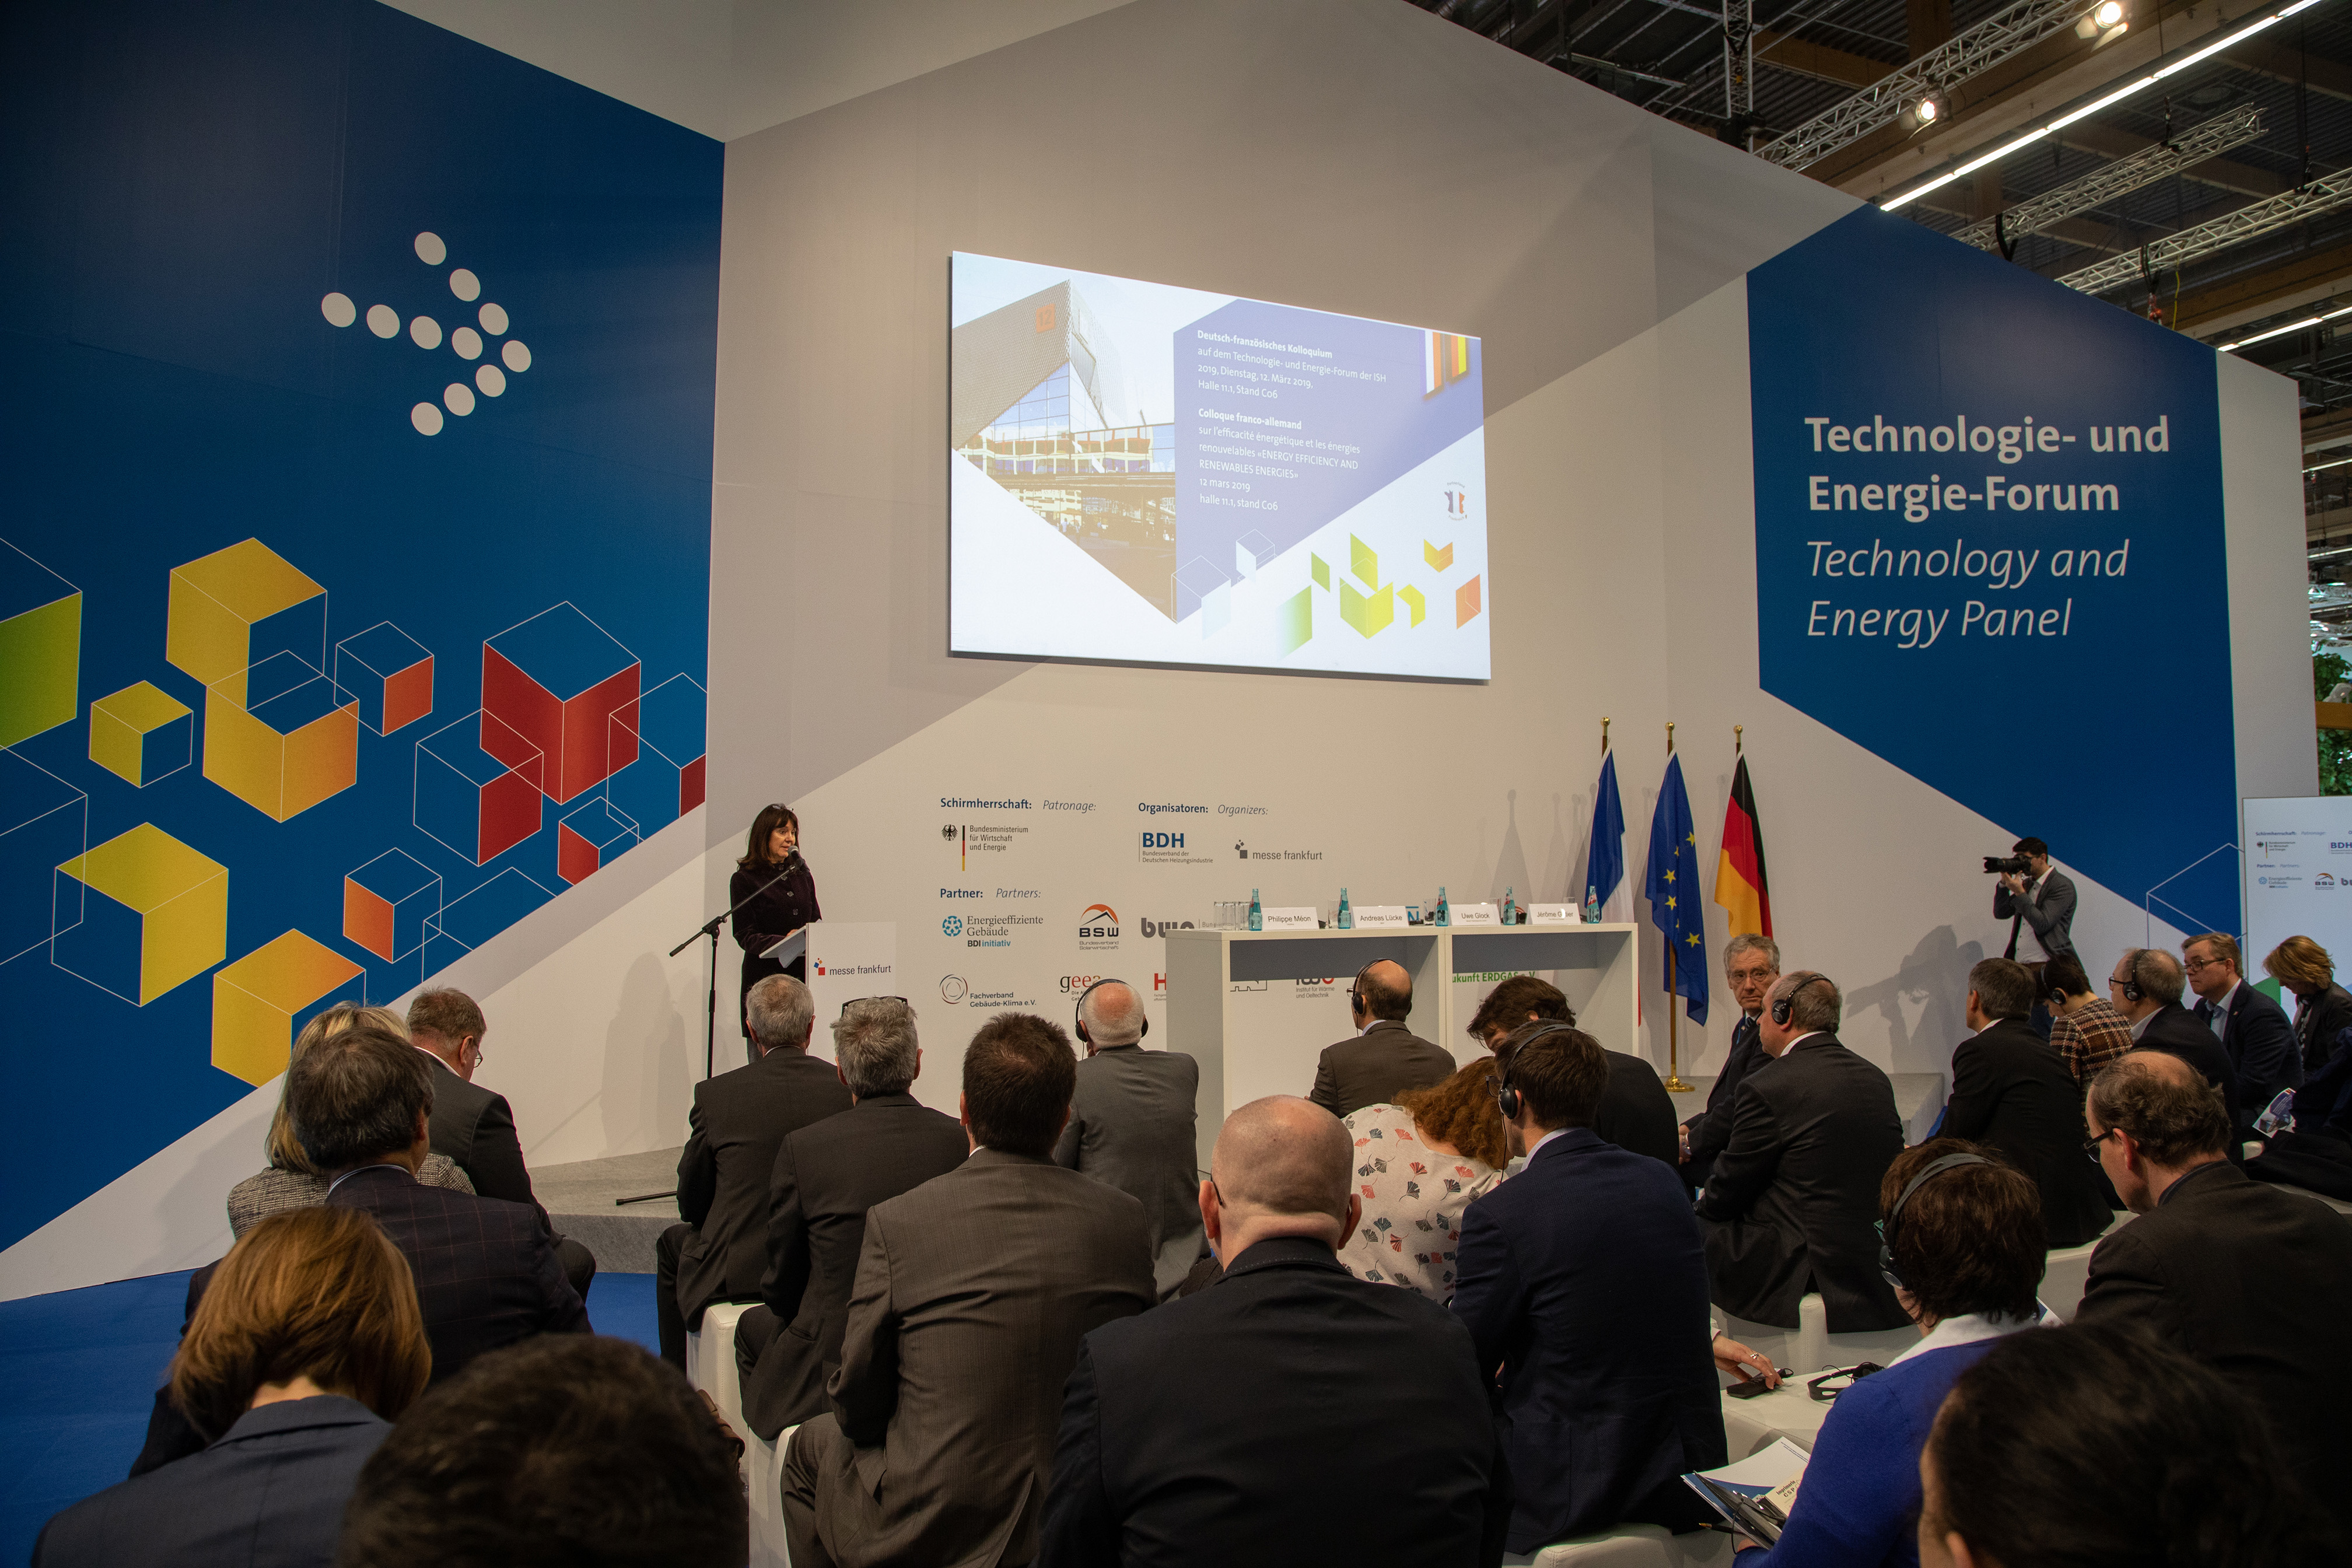 ISH Technology and Energy Forum